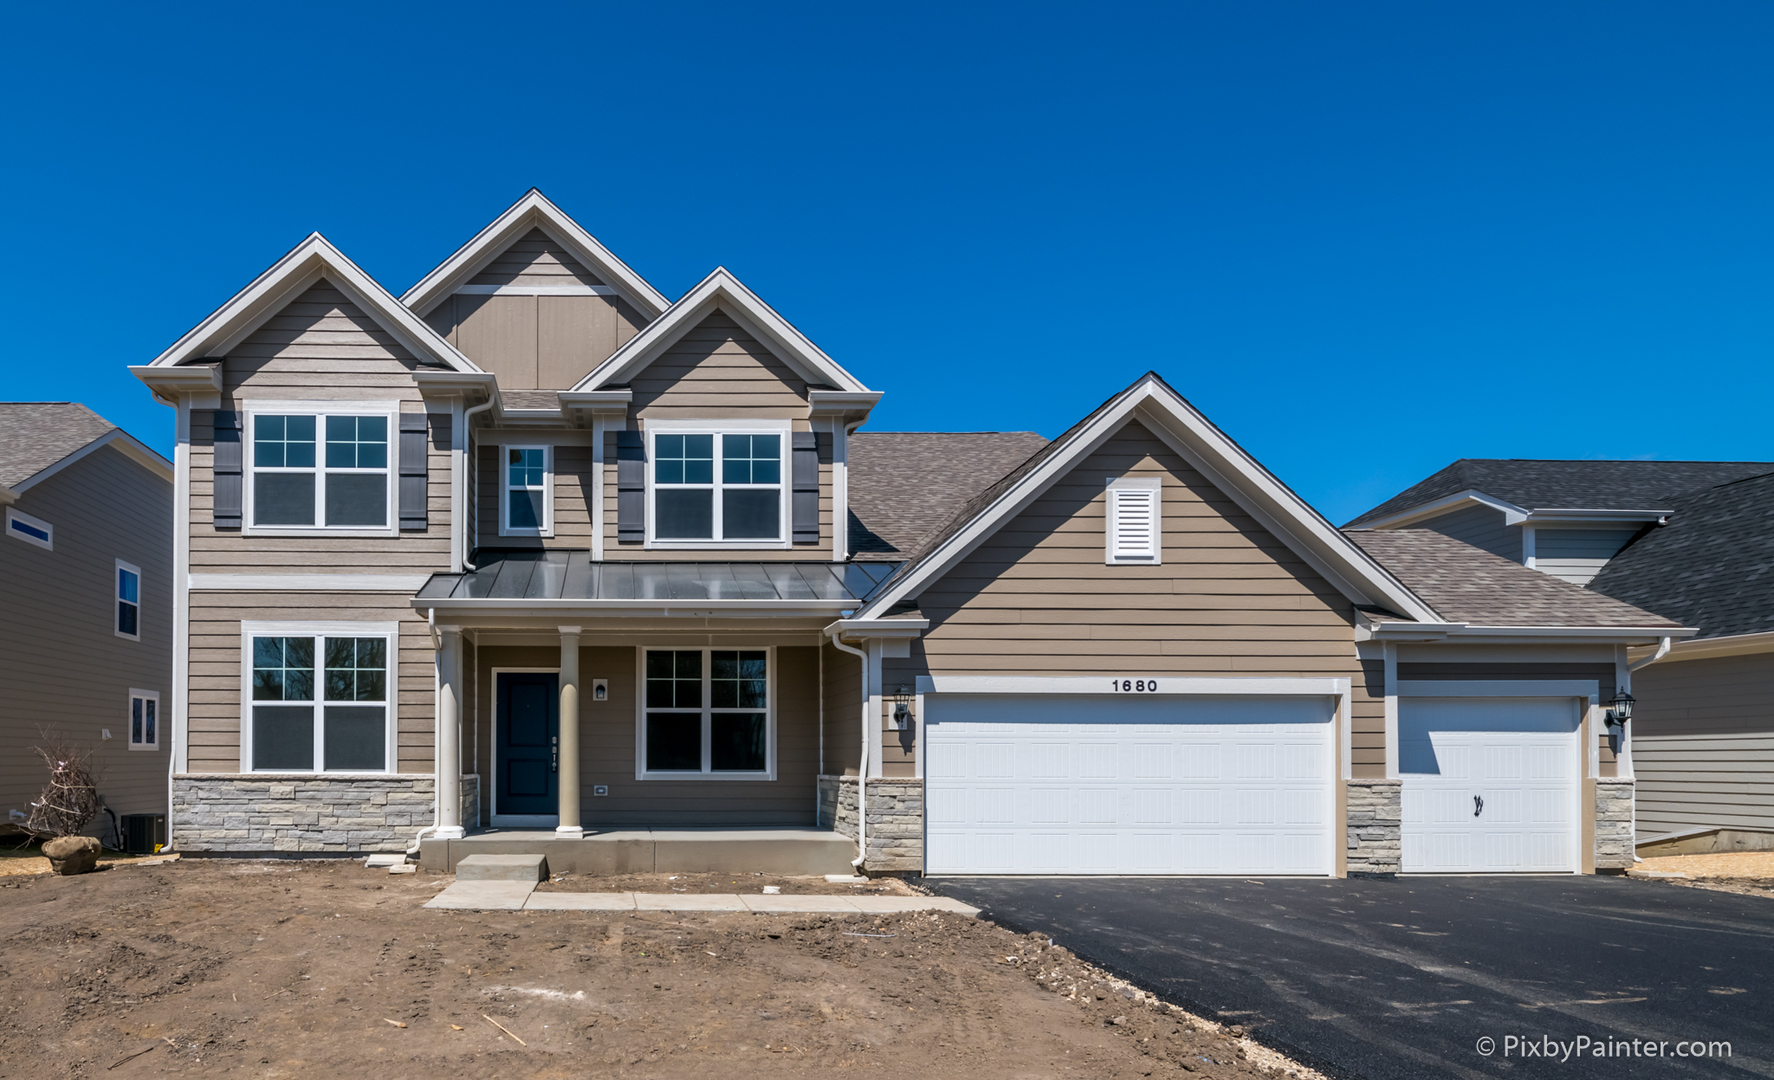 Property for sale at 1680 Creeks Crossing Drive, Algonquin,  IL 60102